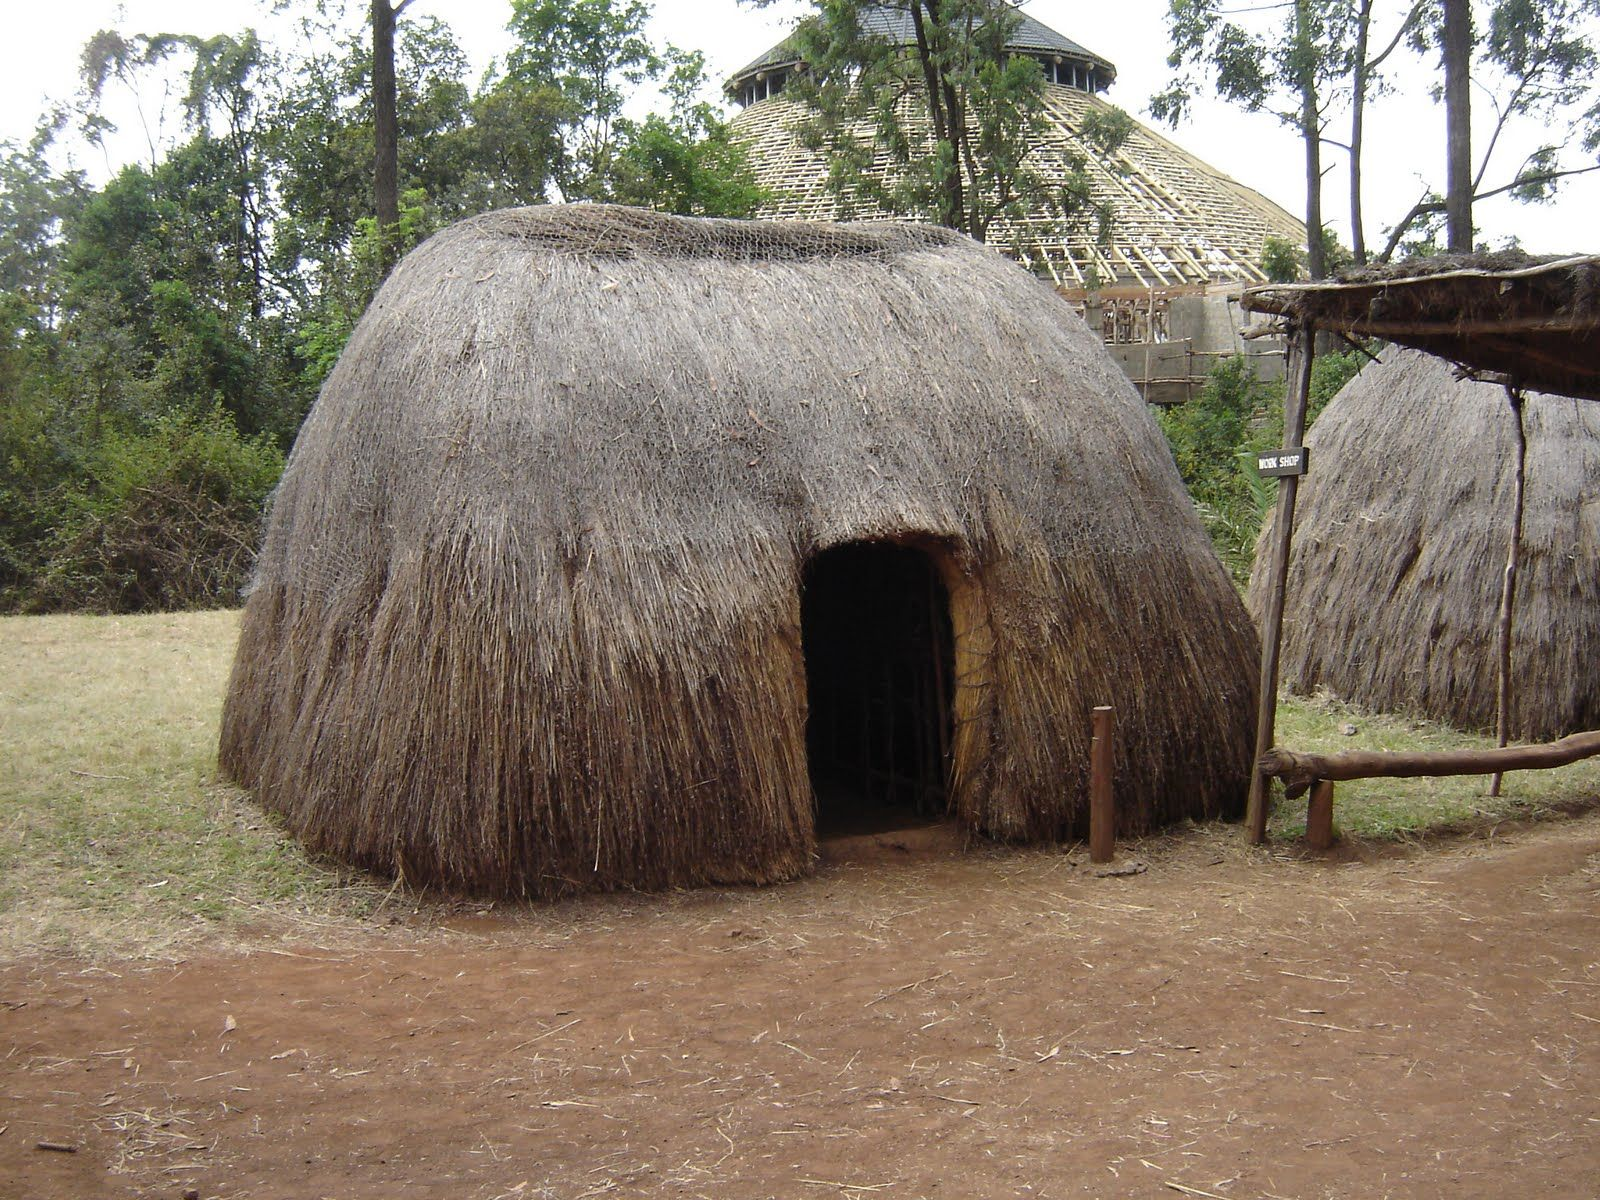 Different homes around the world besides the traditional houses at bomas you can also see performances